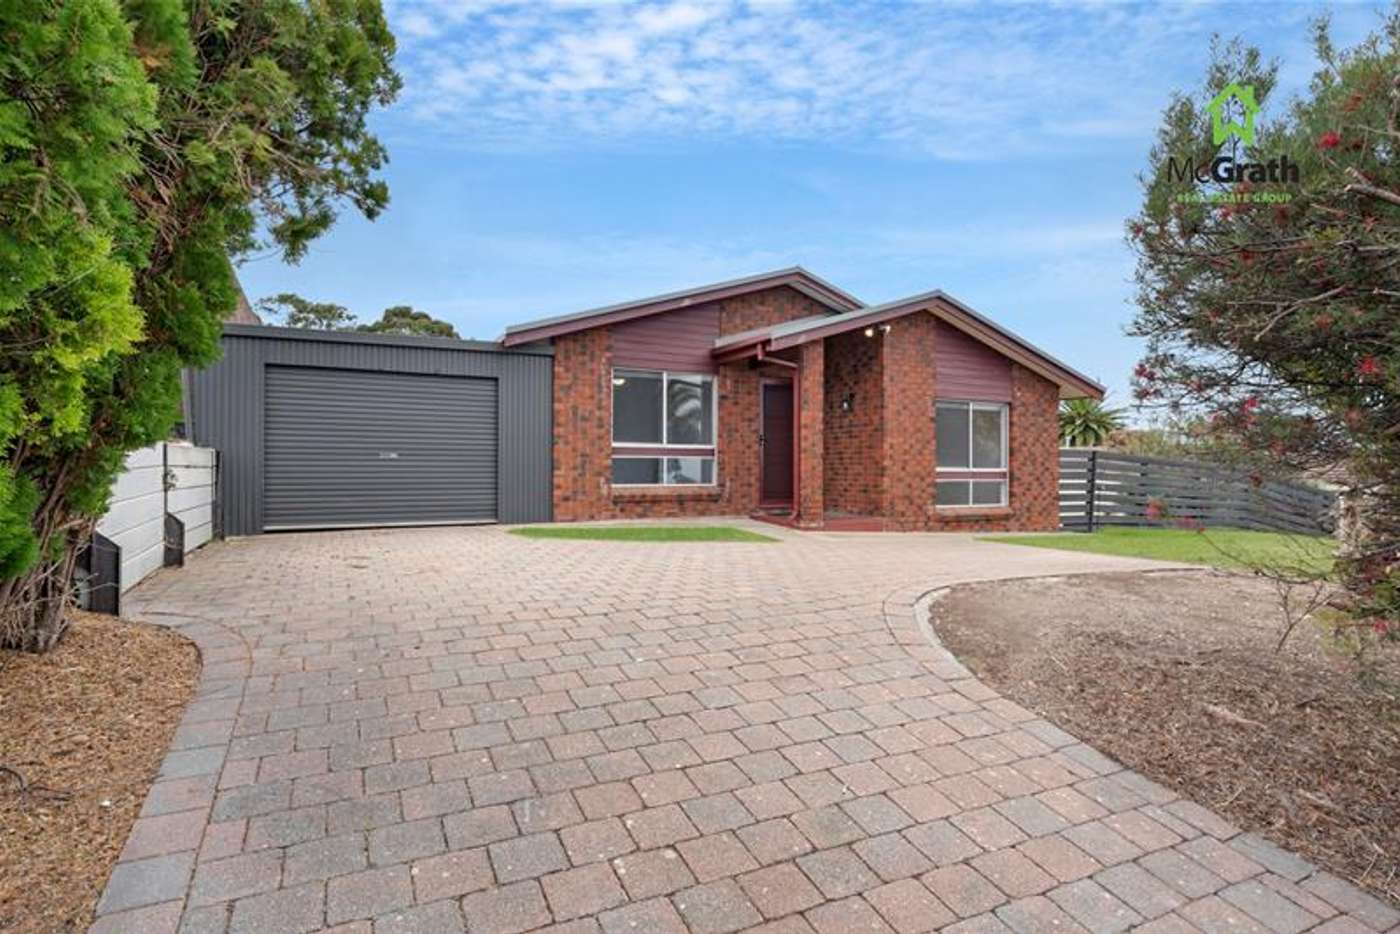 Main view of Homely house listing, 14 Hesperus Street, Hallett Cove SA 5158